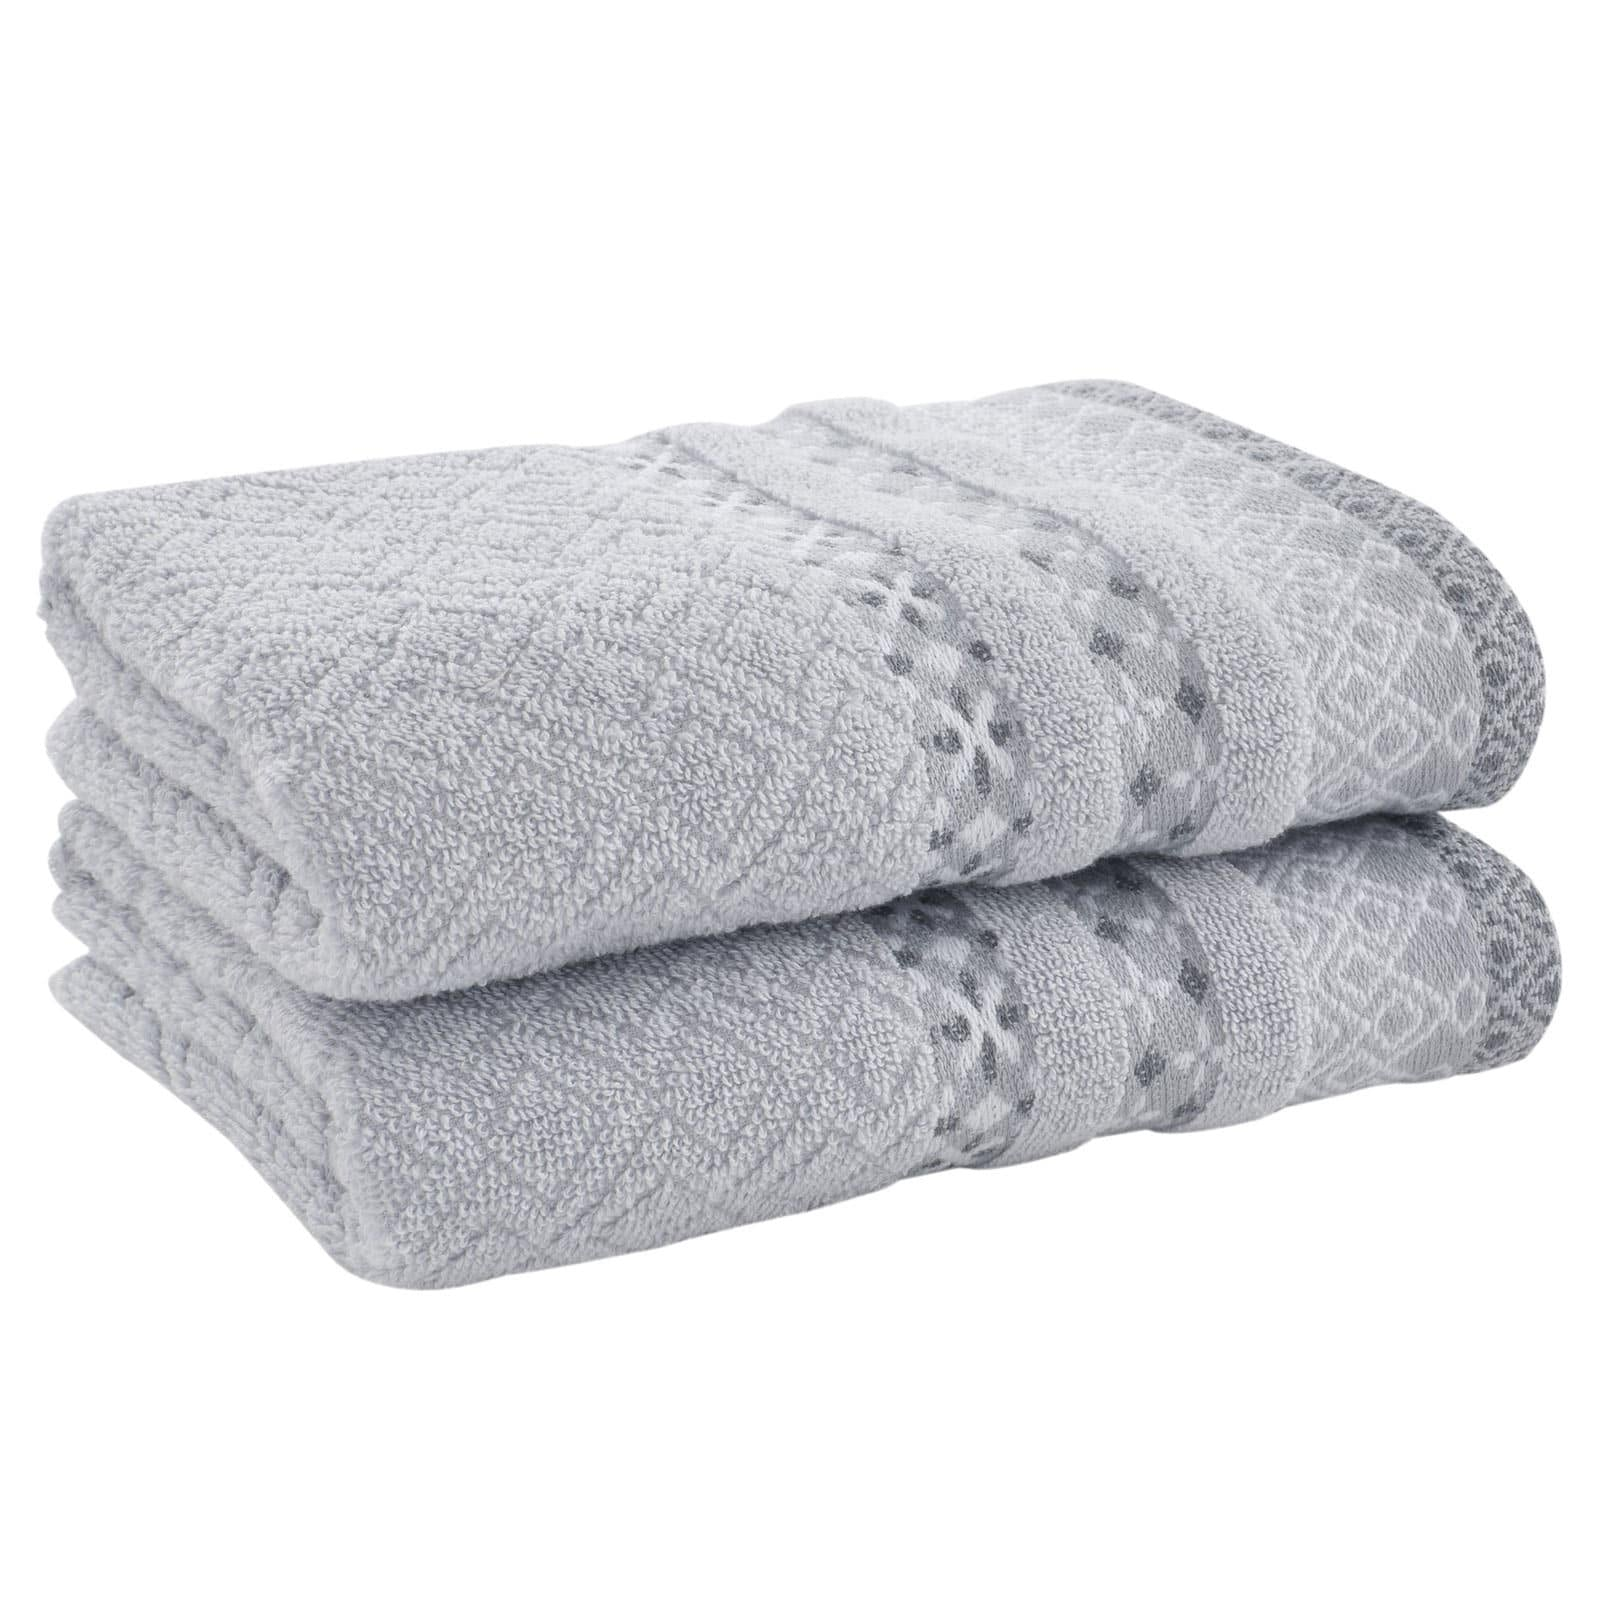 Malawa Geo Grey 2 Piece Towel Sets - Hand Towels - Ideal Textiles